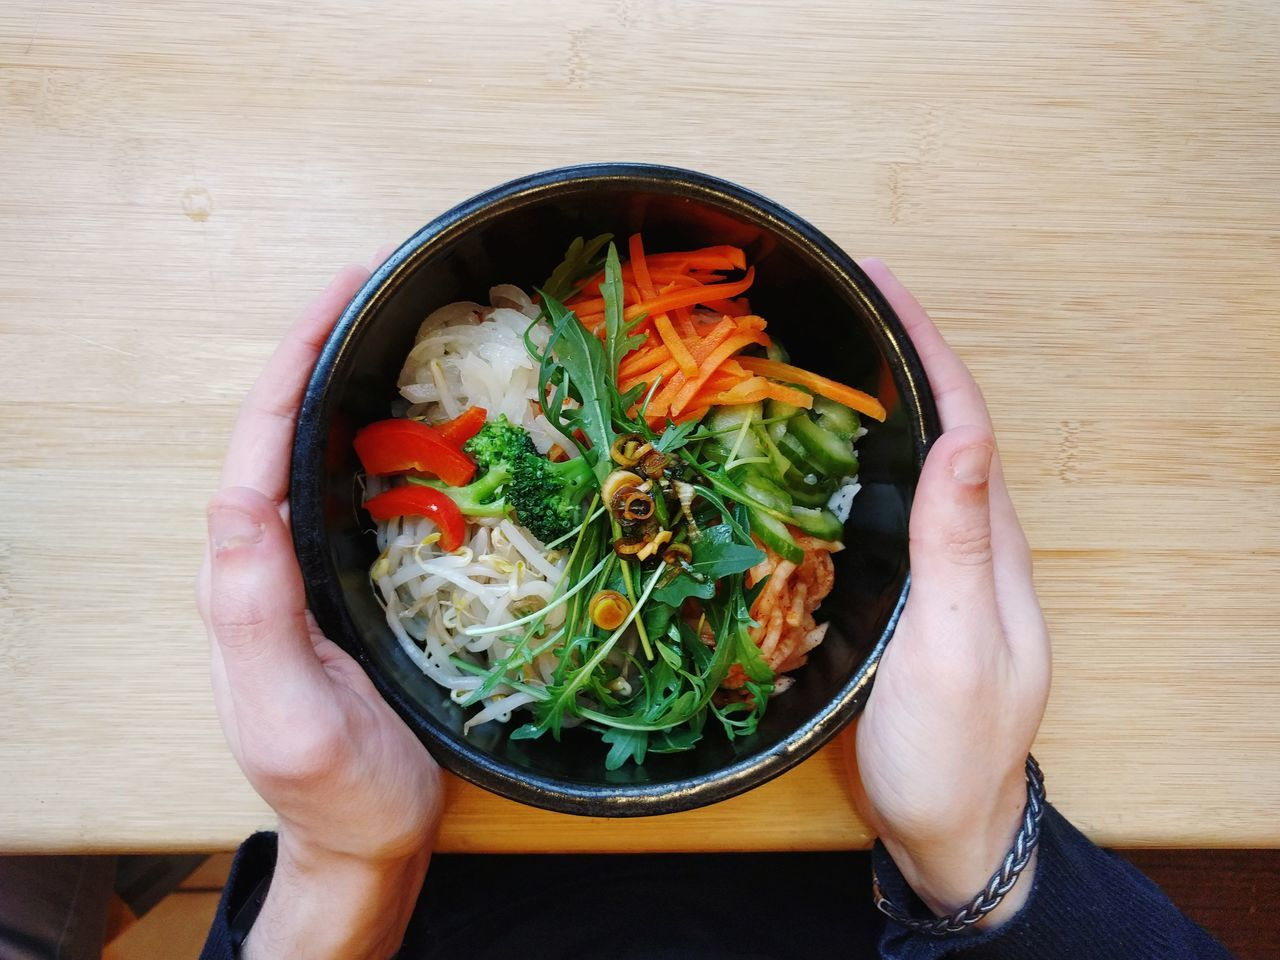 Human Hand Human Body Part Arugula Salad Vegetable Food One Person Healthy Eating Healthy Lifestyle Adults Only Vegetarian Food Ready-to-eat Only Women Close-up Freshness People Adult Indoors  Day Salad Healthy Food Korean Food